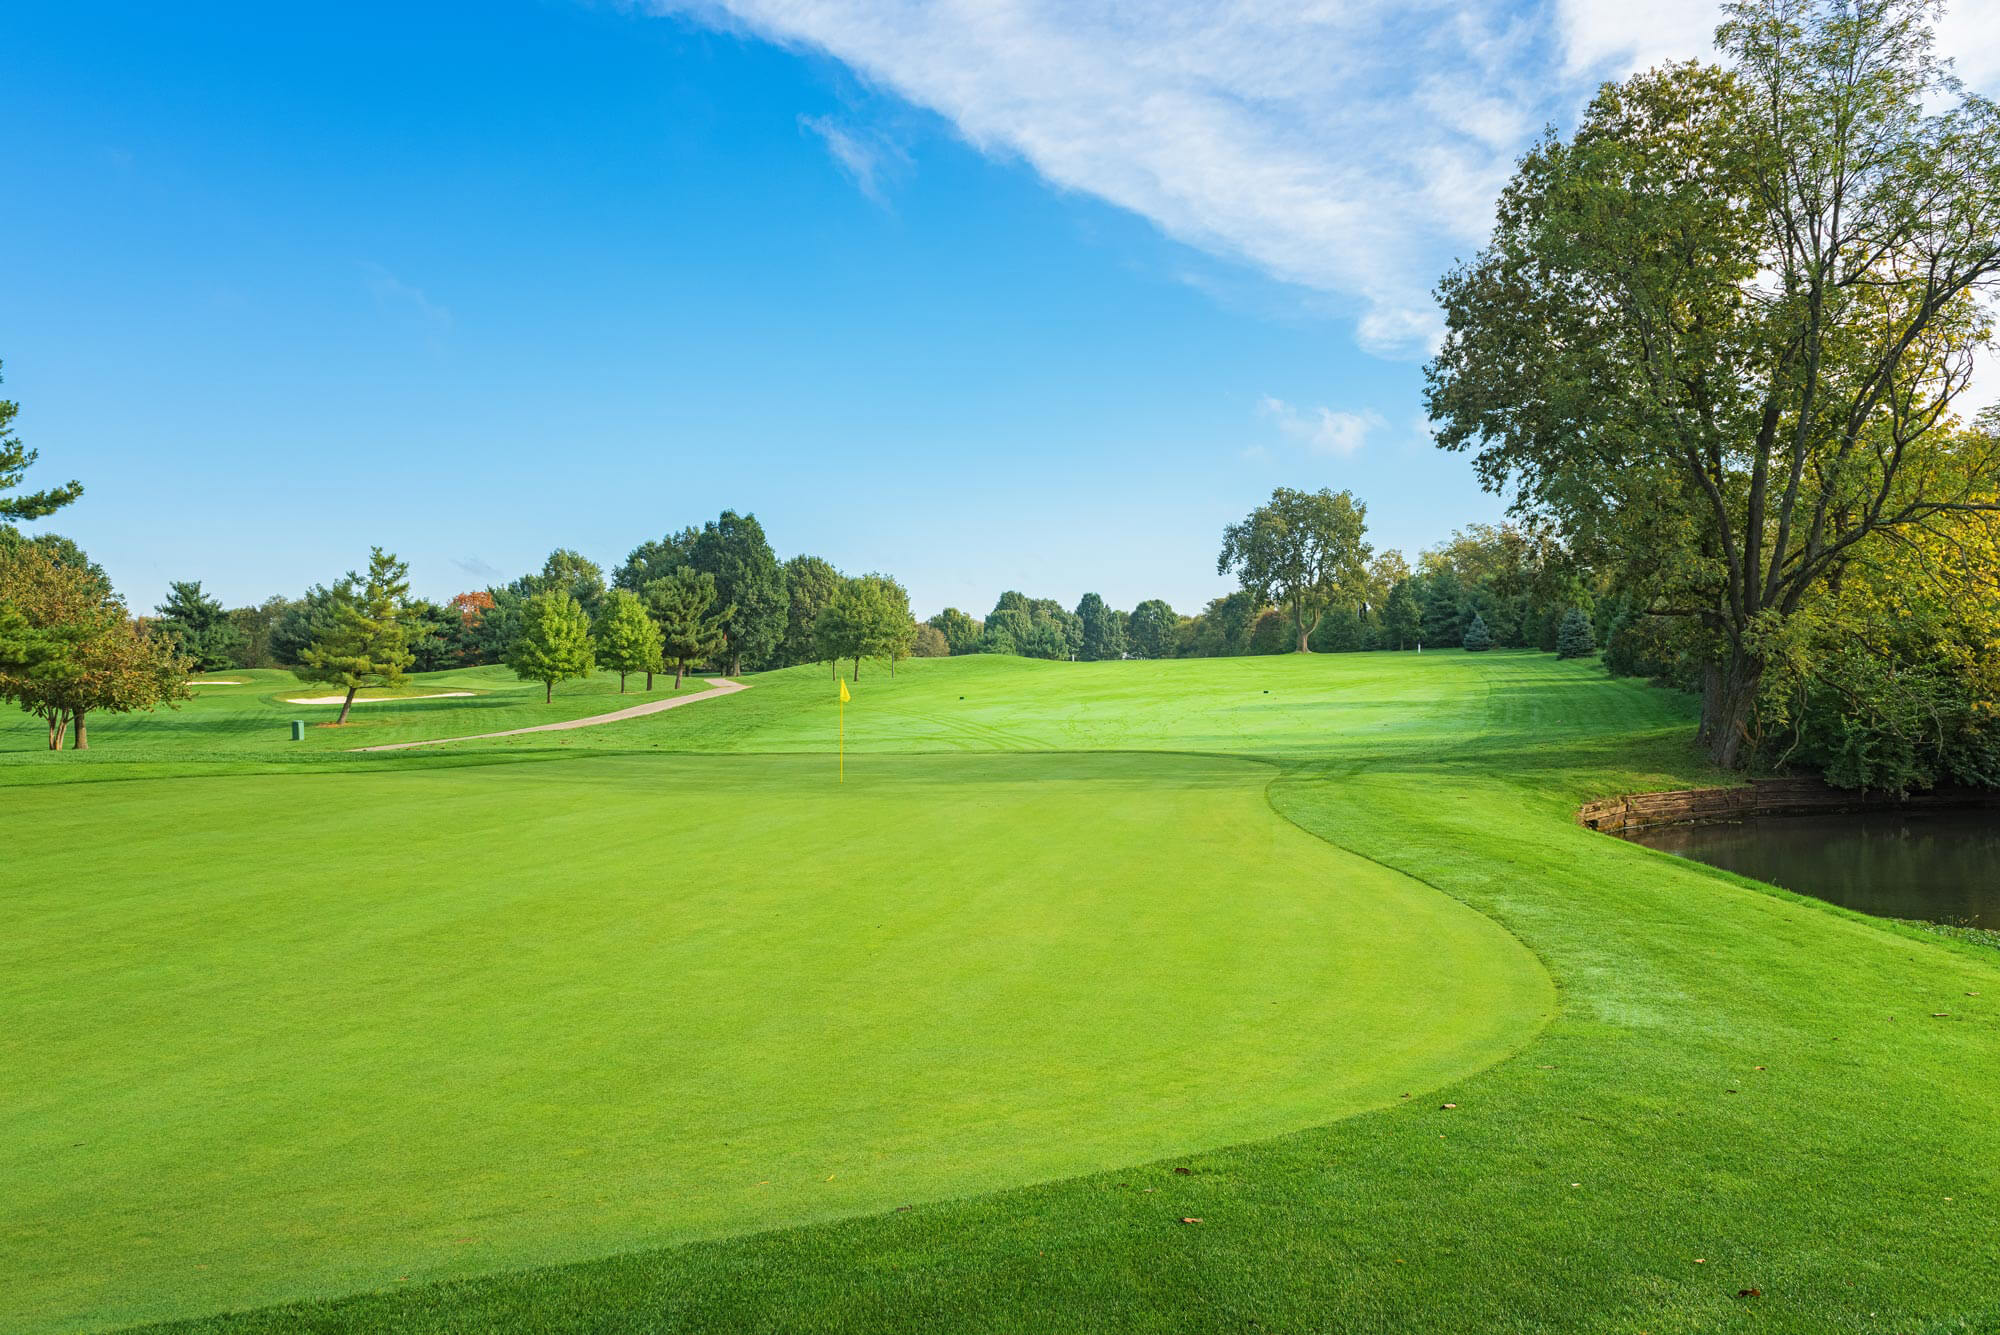 OUR PRISTINE COURSE WILL TAKE YOUR OUTING TO THE NEXT LEVEL!